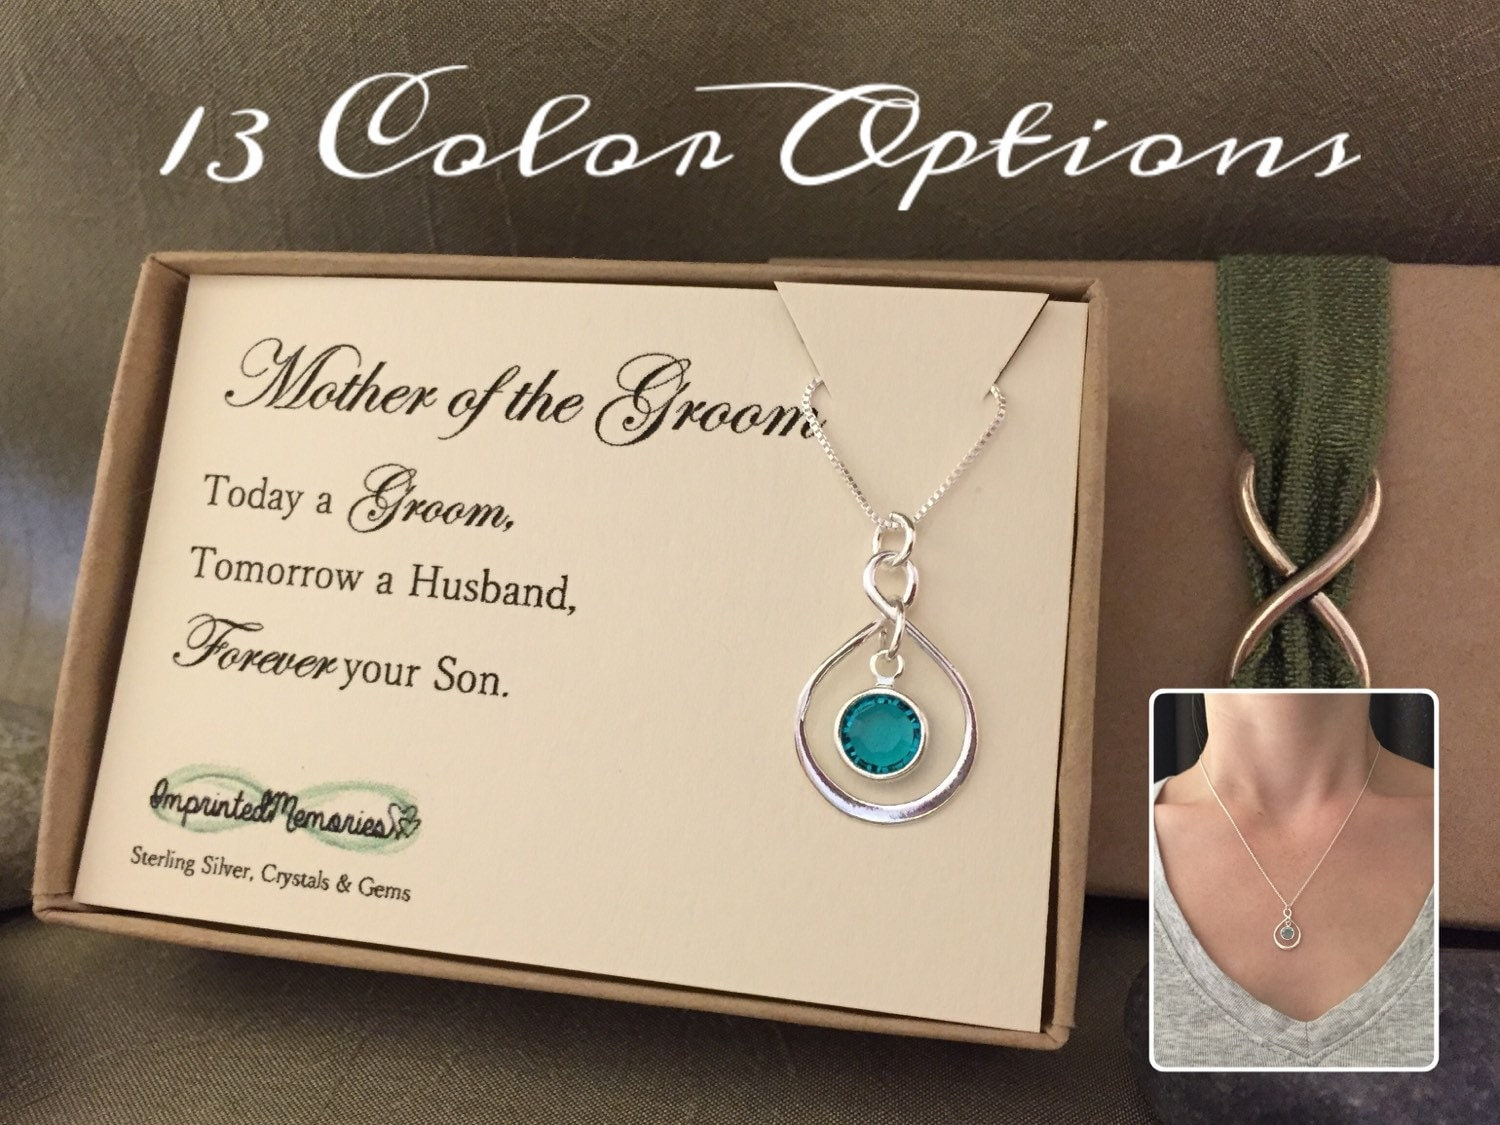 Grooms Gift To Mom: Mother Of The Groom Gift From Groom Necklace By